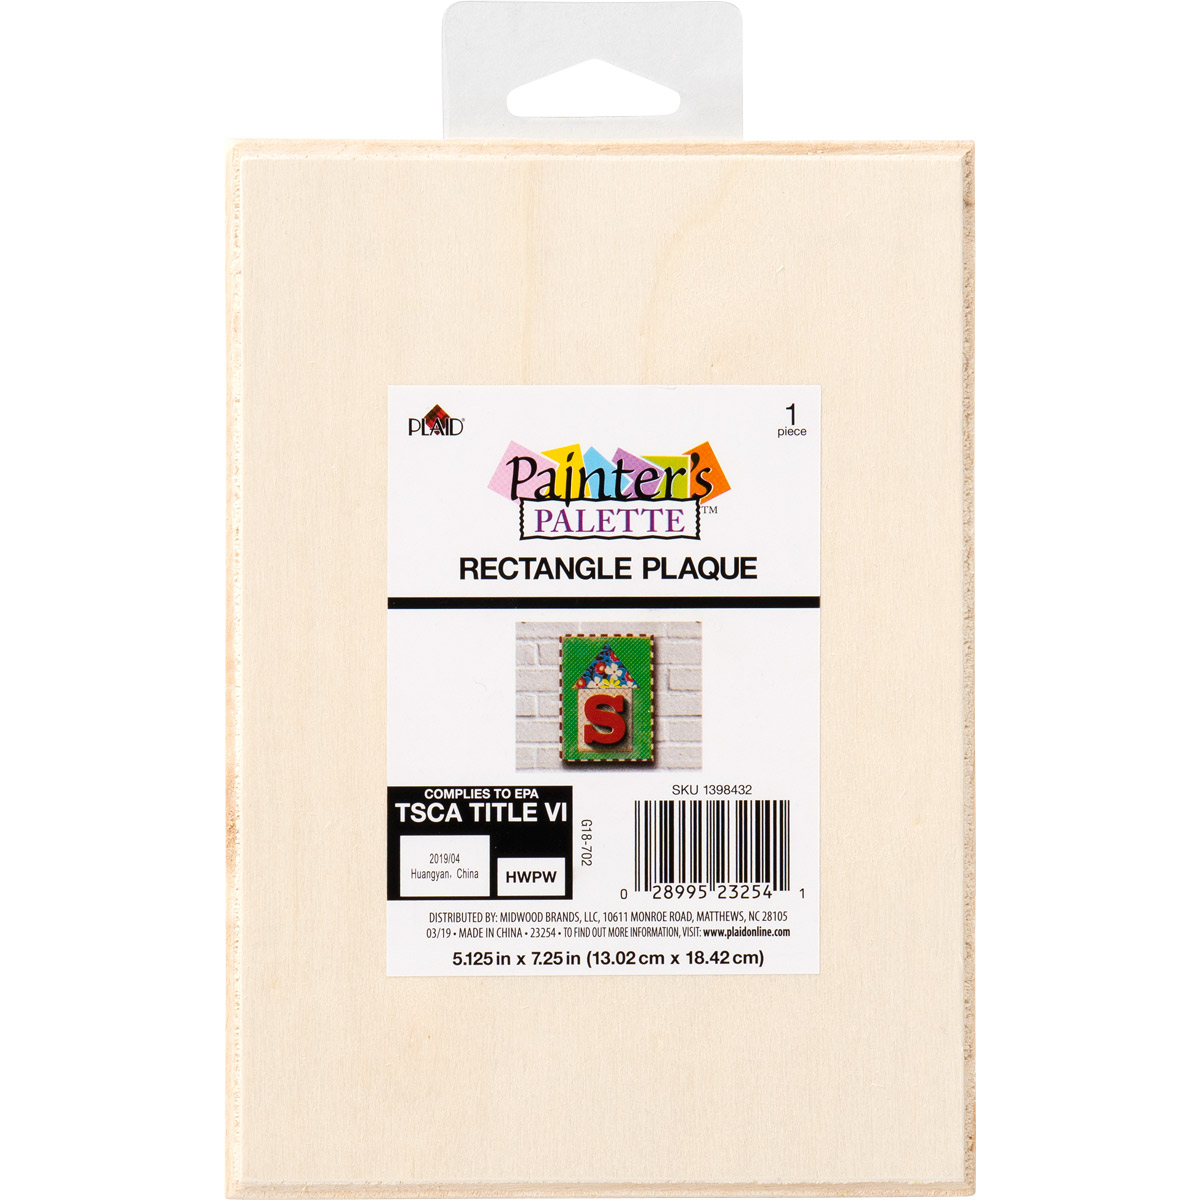 Plaid ® Painter's Palette™ Wood Value Plaque - Rectangle, 5 x 7 - 23254